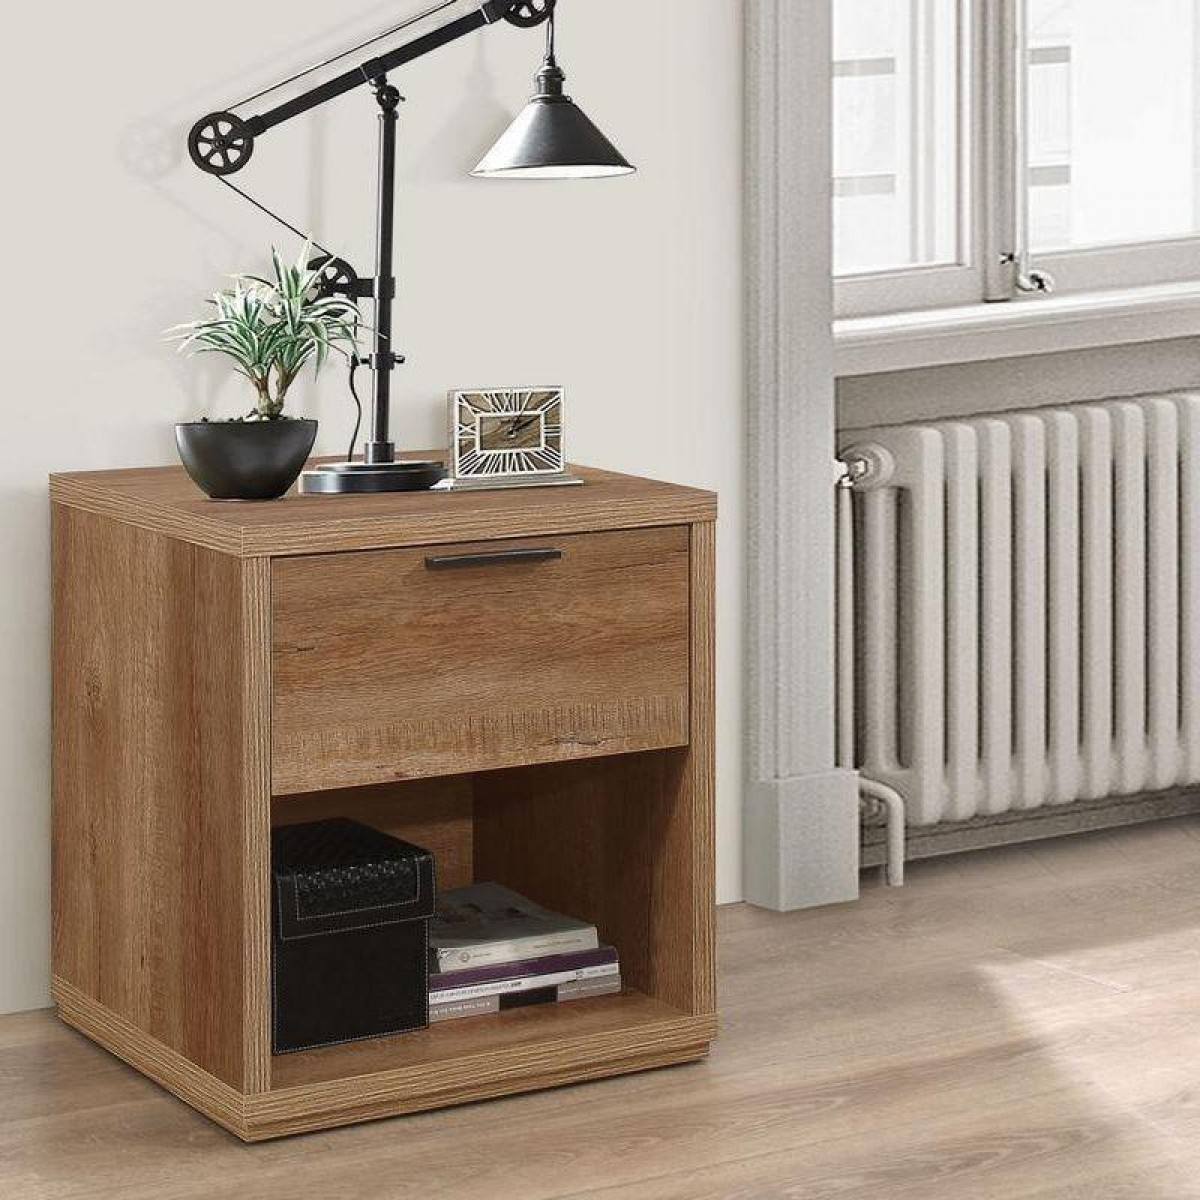 Stockwell Rustic Oak Wooden 1 Drawer Bedside Table